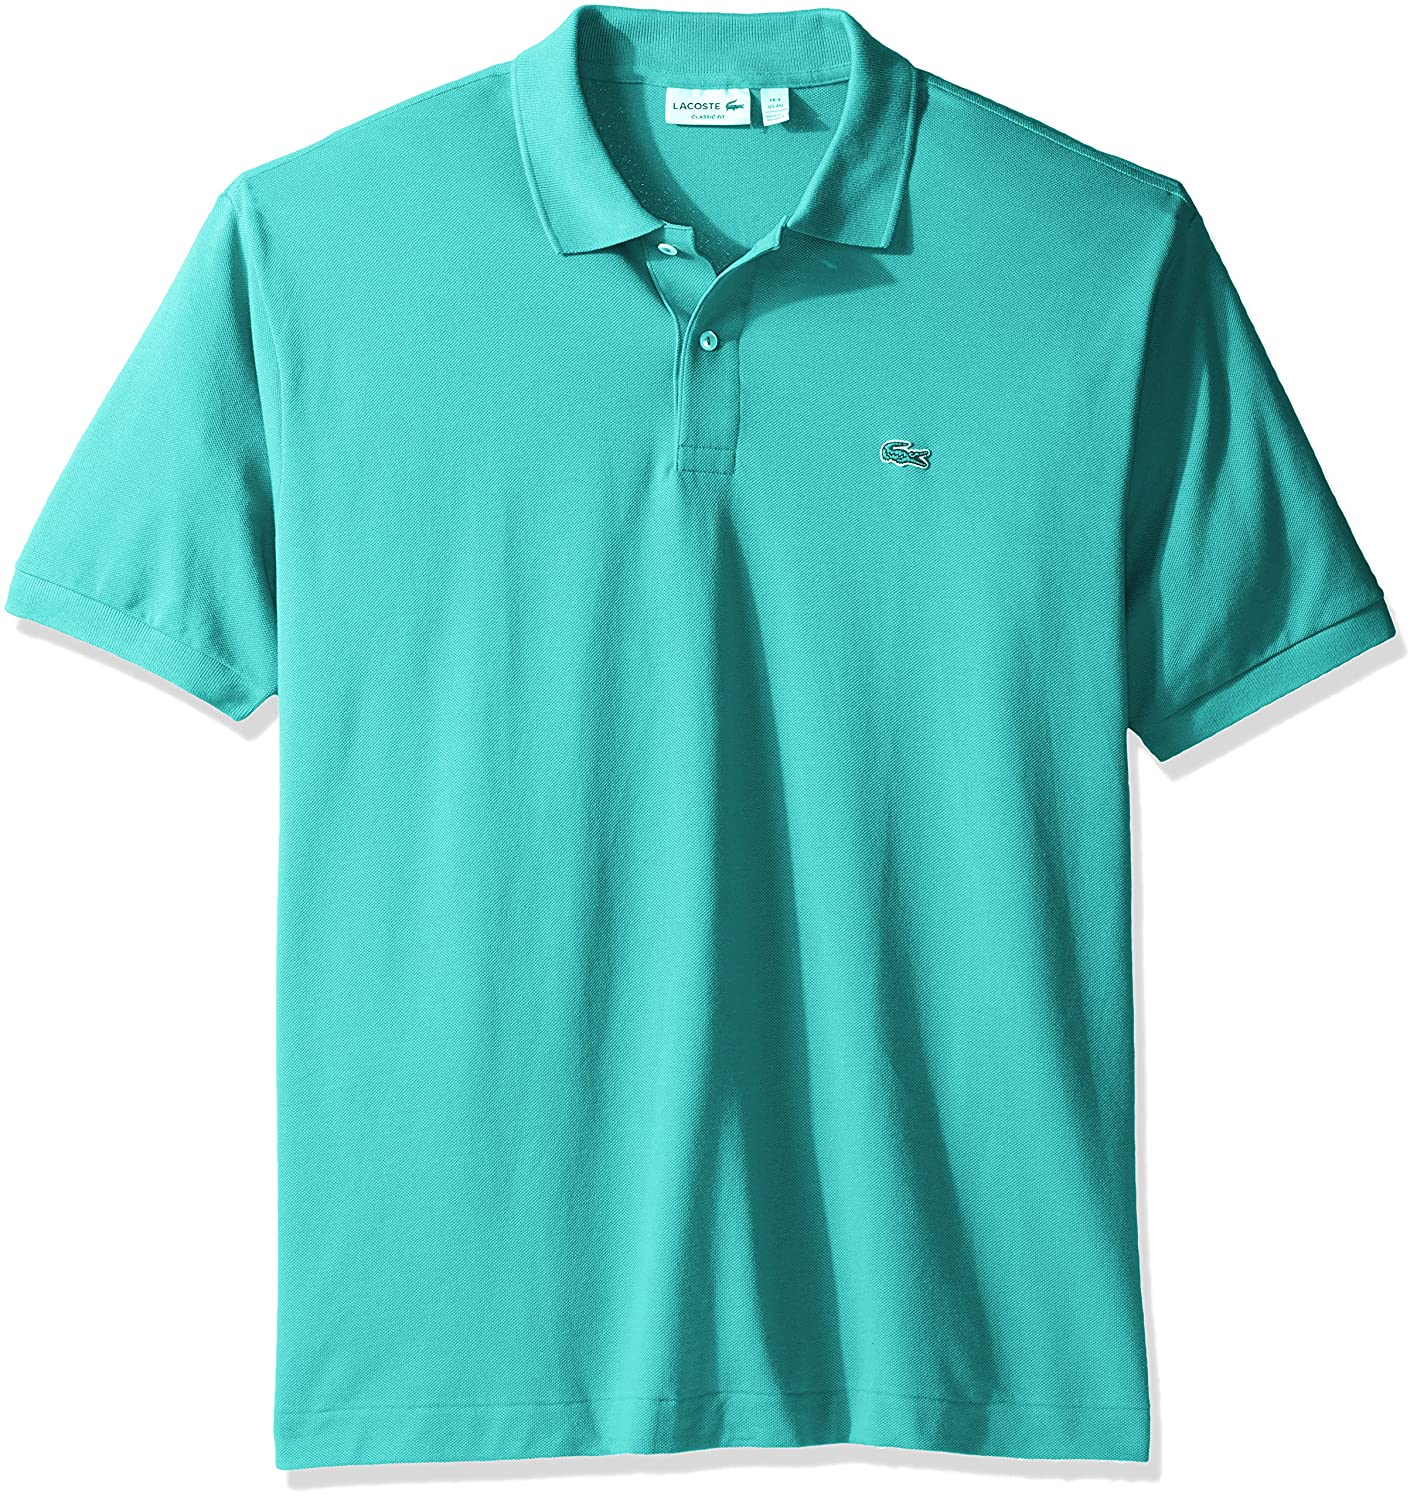 Lacoste Men s Short Sleeve Pique L.12.12 Classic Fit Polo Shirt, L1212 at  Amazon Men s Clothing store  fbd270893e